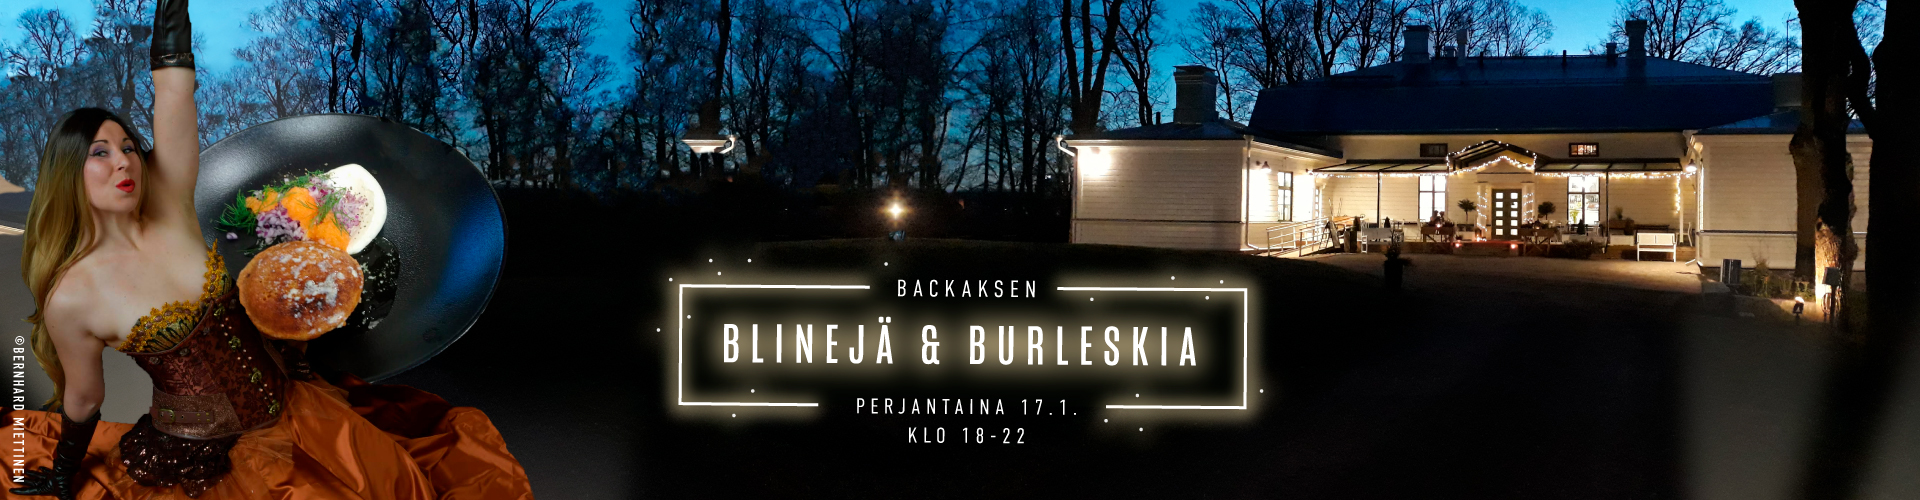 Backaksen Blinejä & Burleskia 17.1 & 31.1